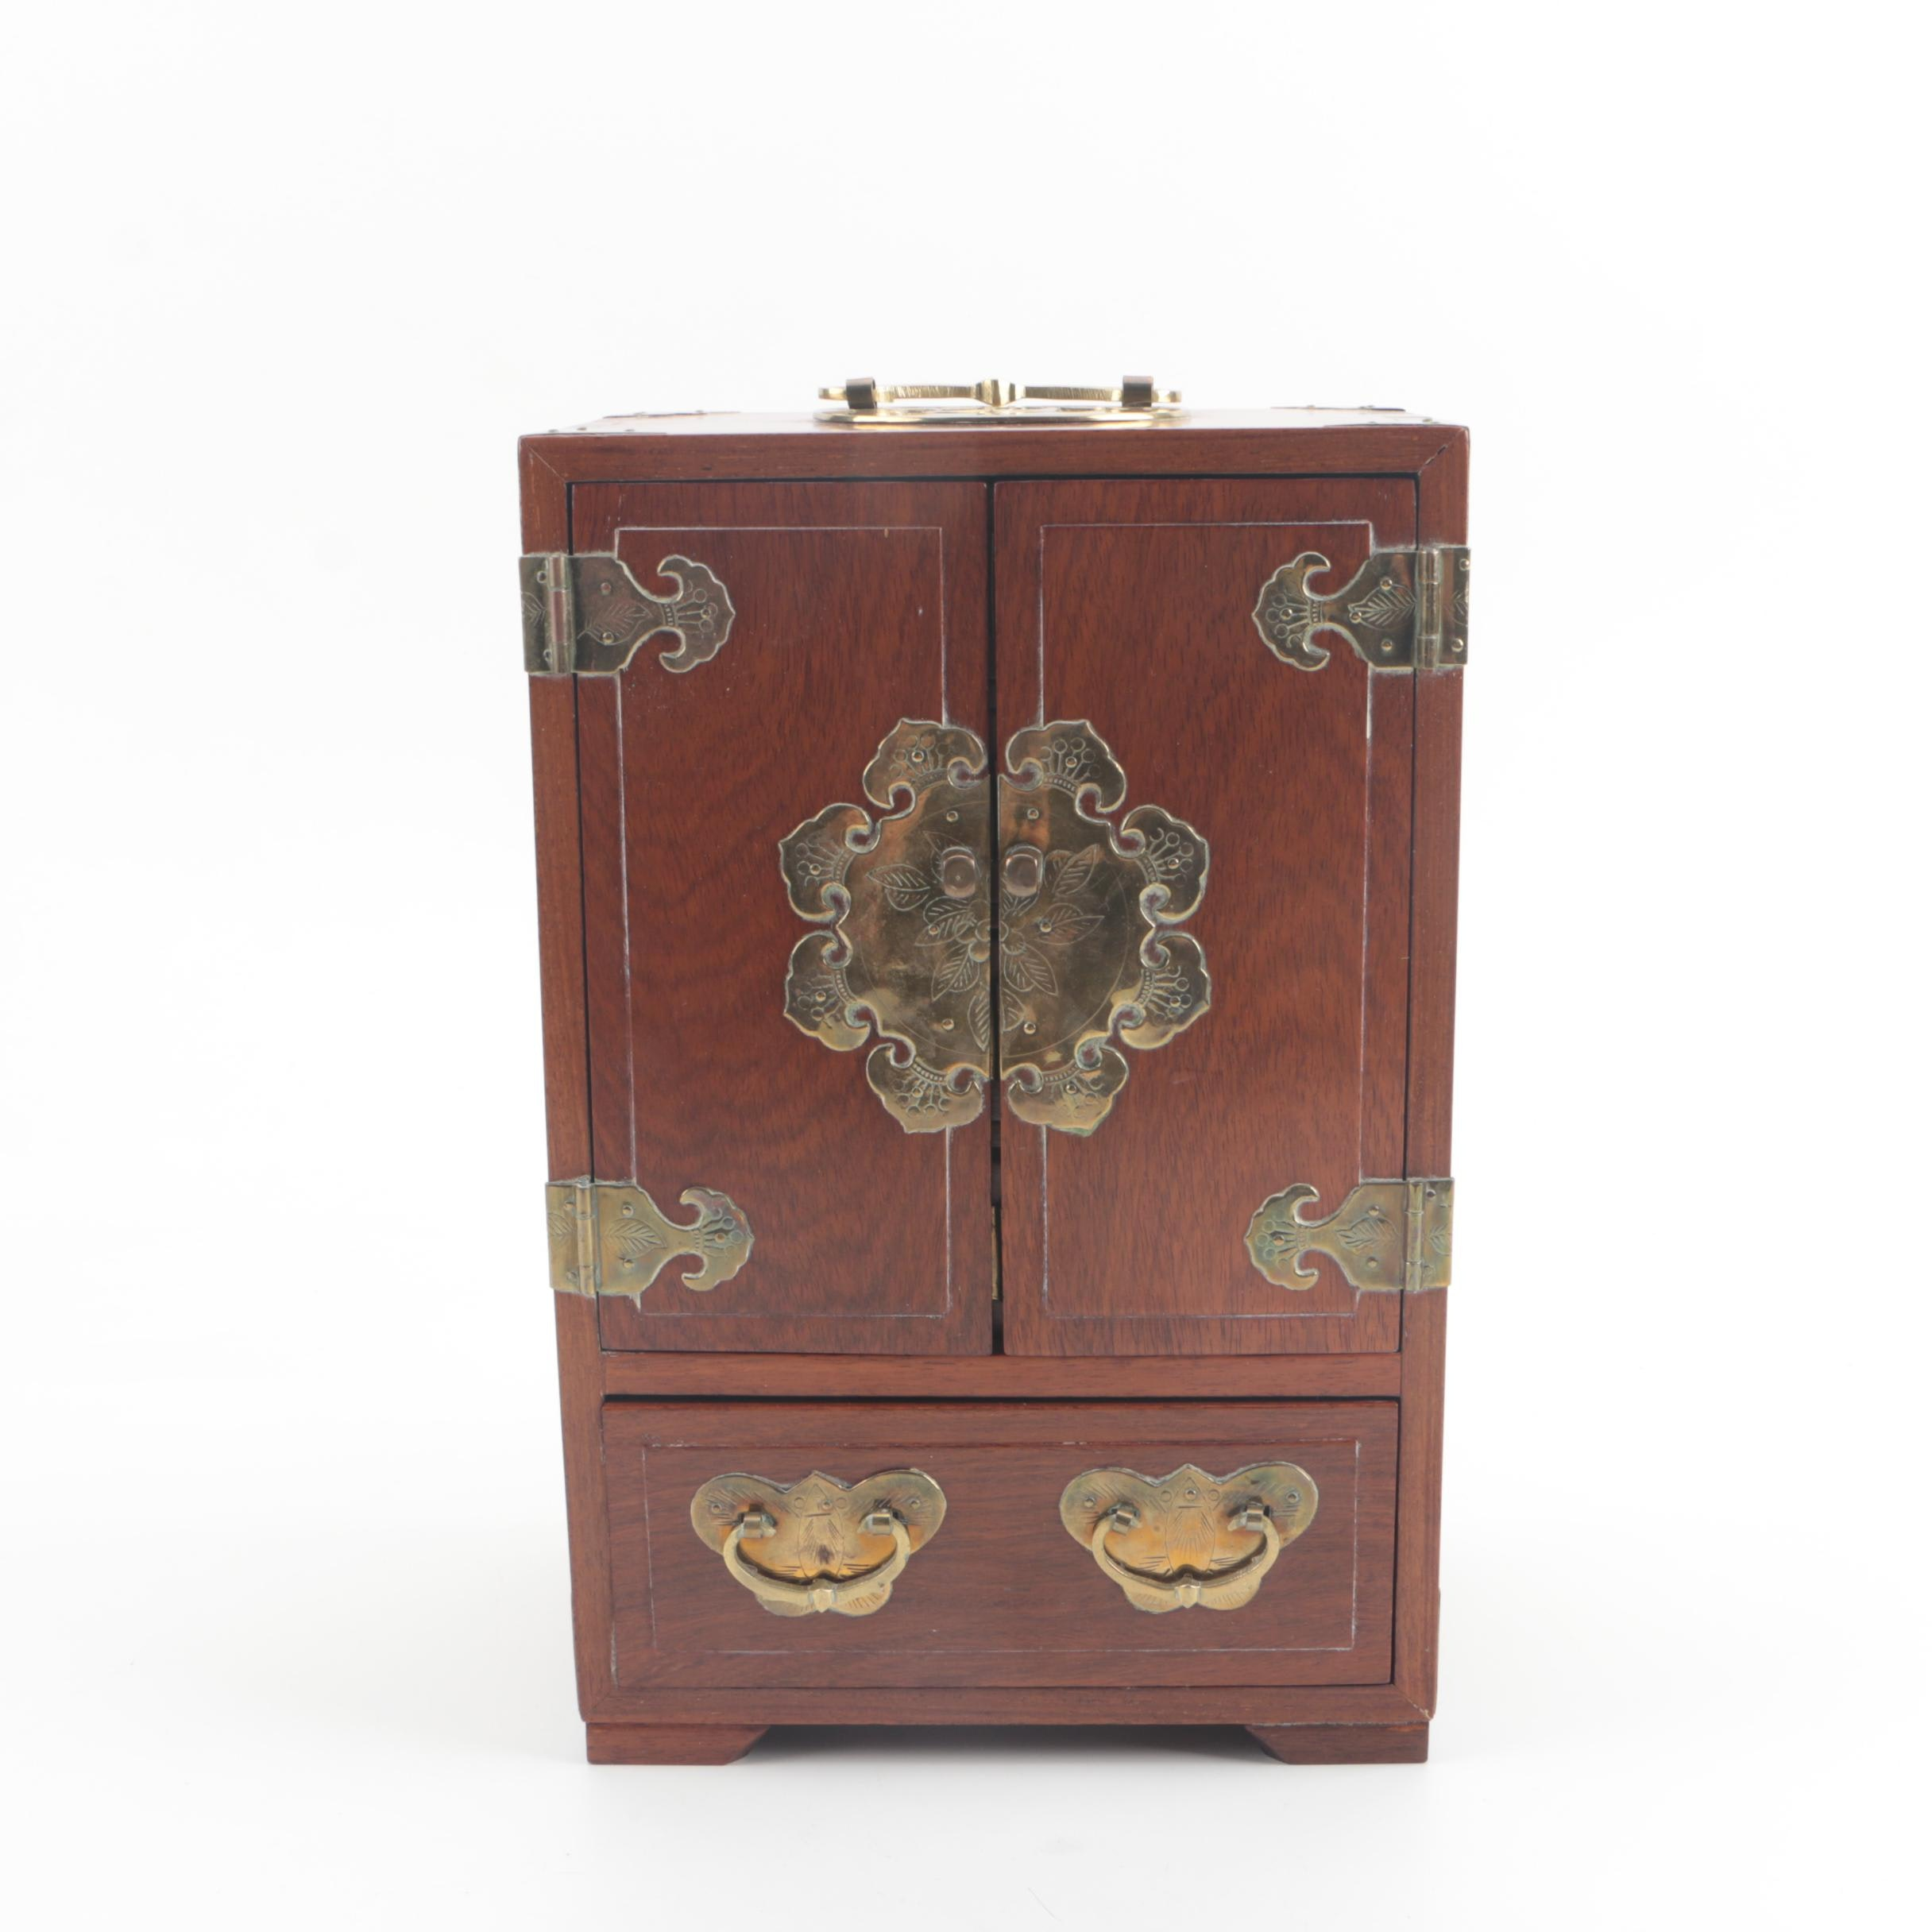 George Zee & Co. Chinese Teak Stained Jewelry Chest